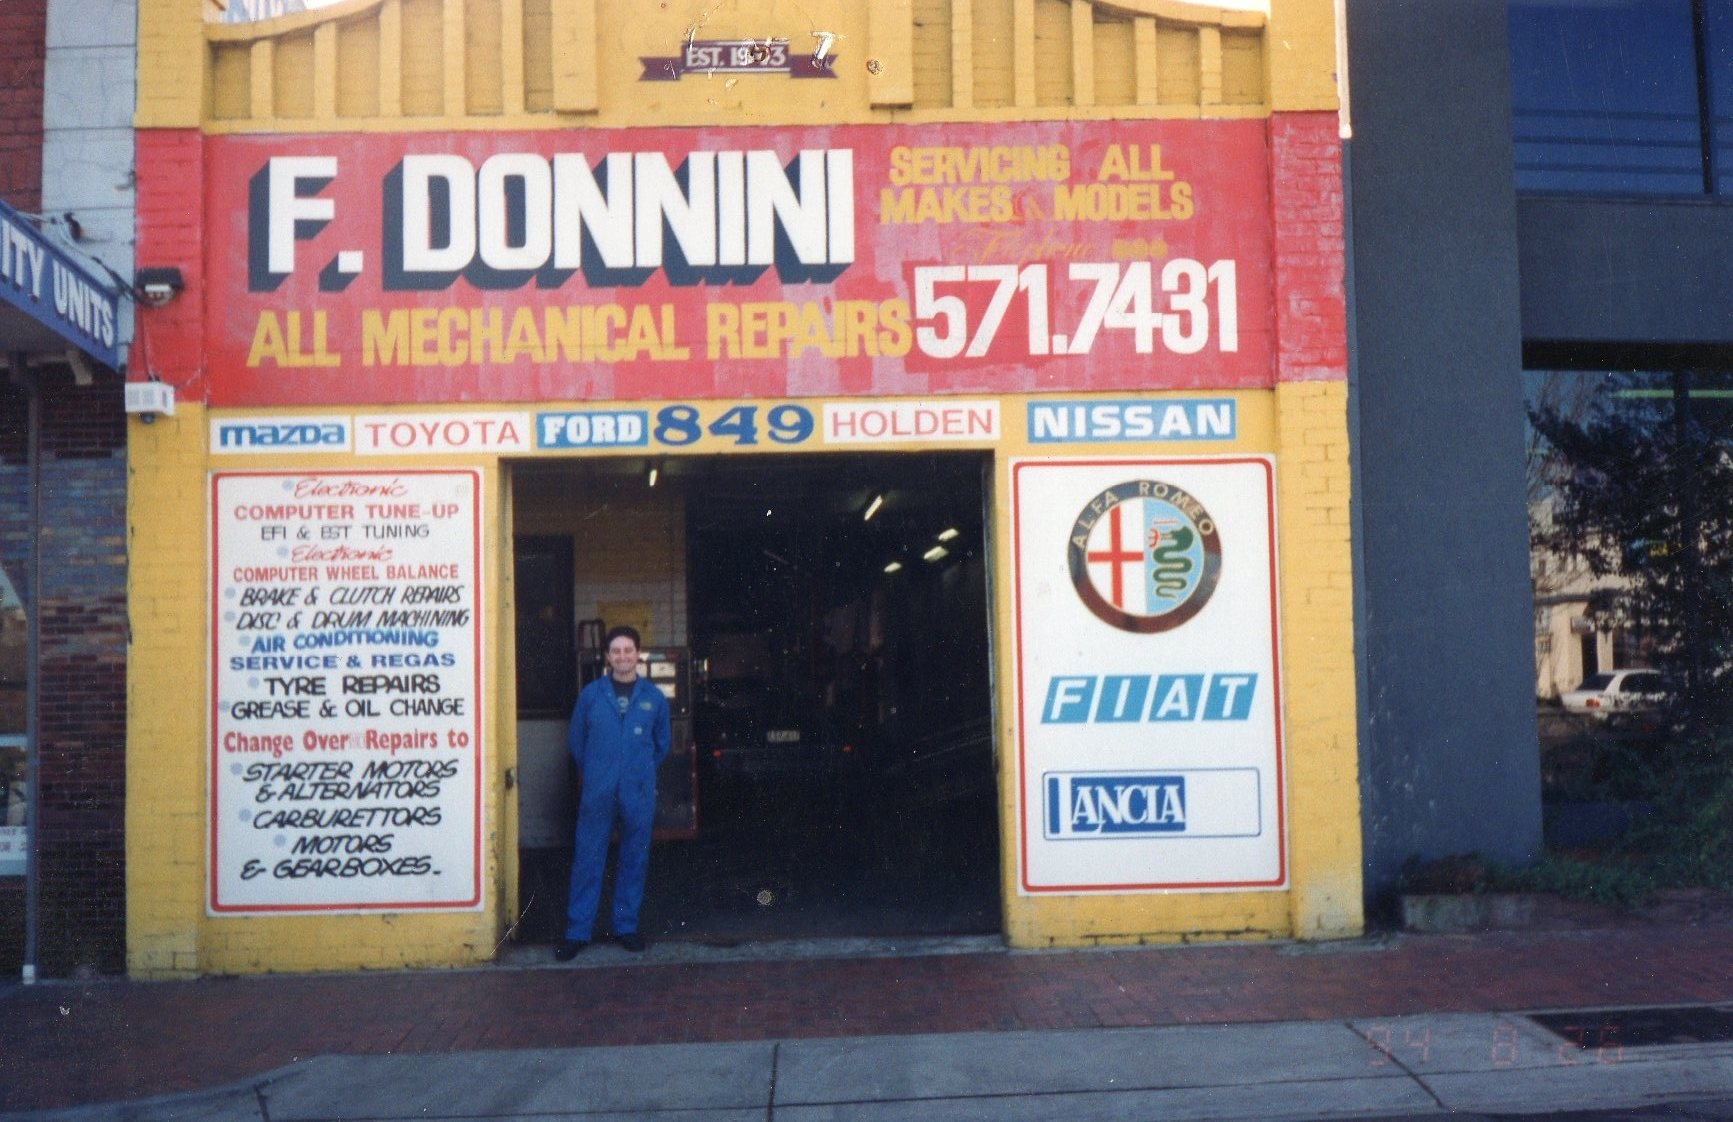 Old Workshop in East Malvern Before Relocating to Campbellfield in 1994 Established by Frank Donnini in Melbourne